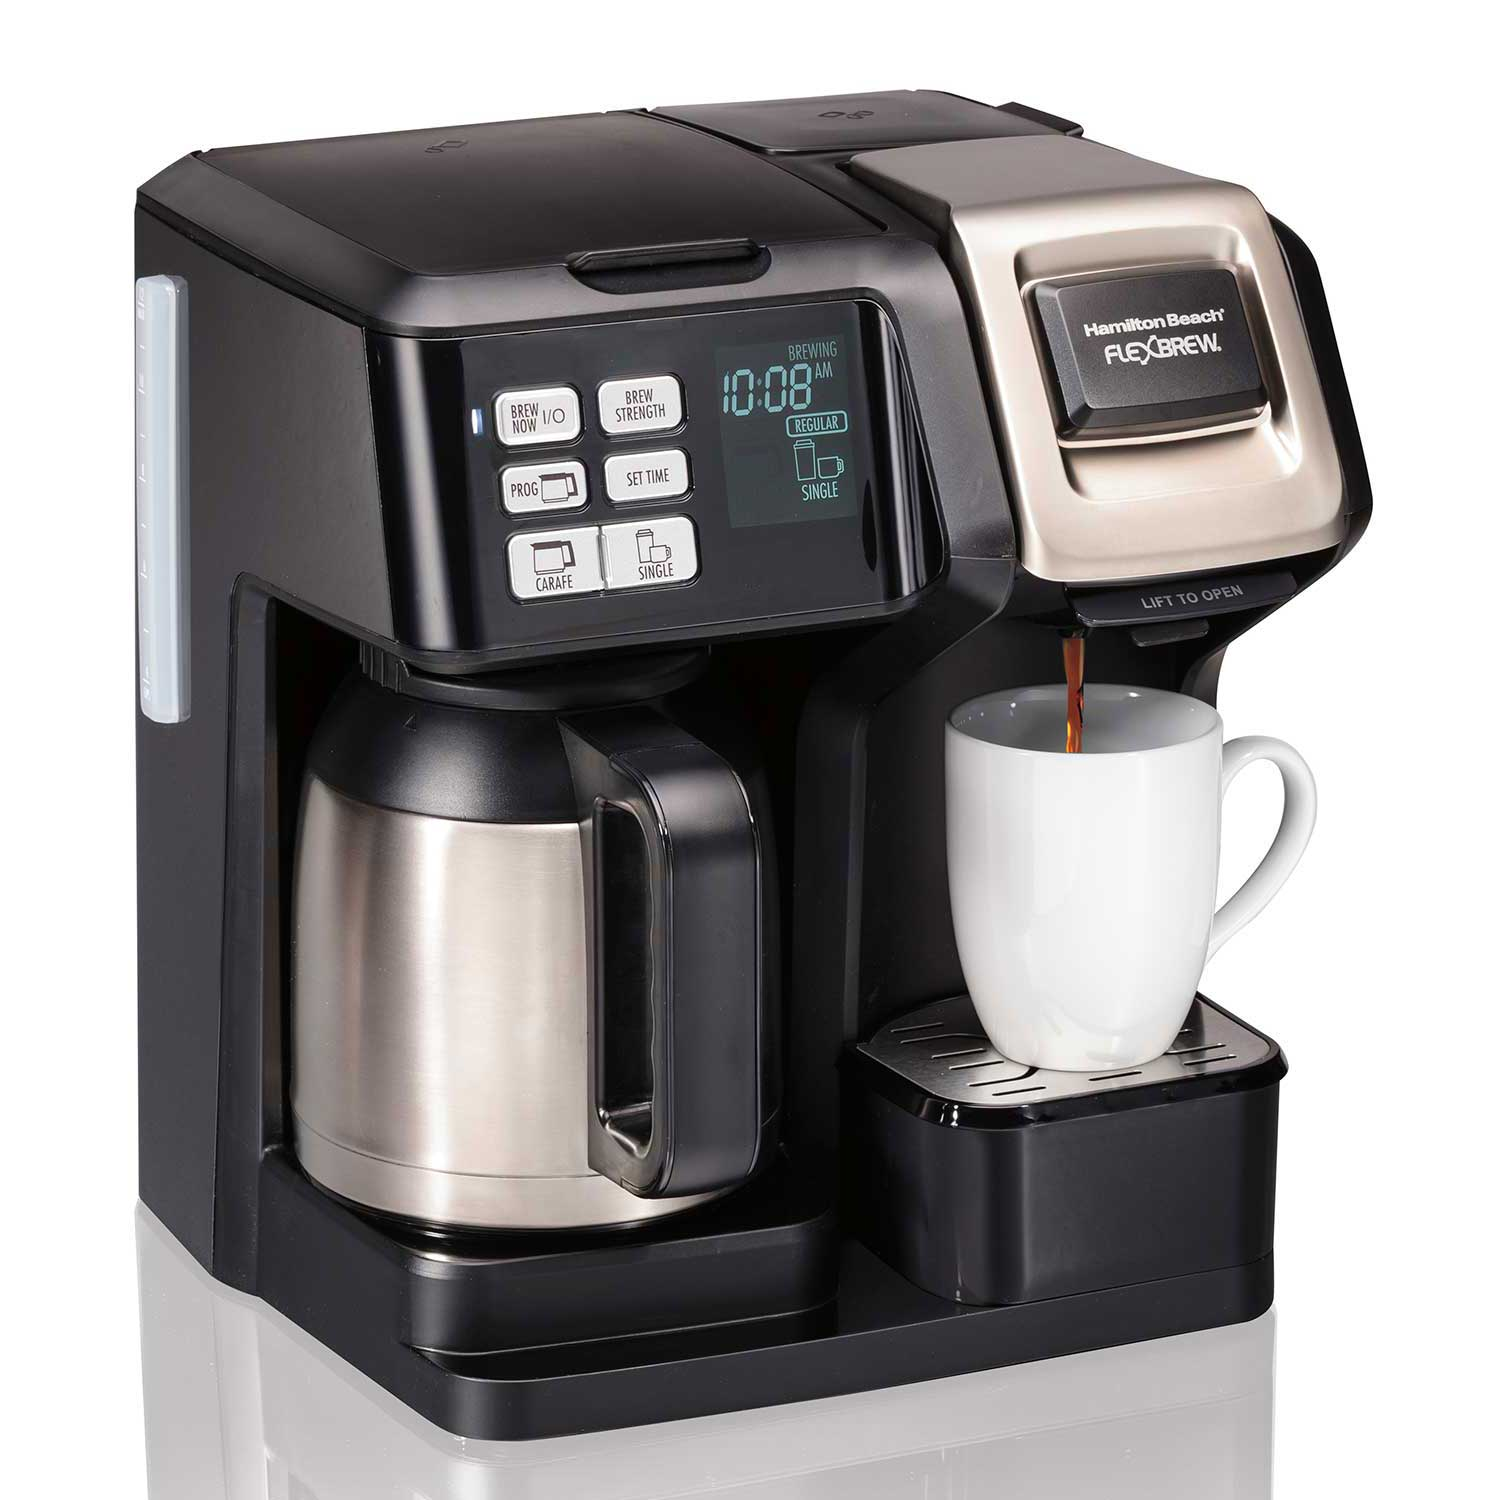 FlexBrew® 2-Way Coffee Maker with 10-Cup Thermal Carafe & Pod Brewer, Black (49966)